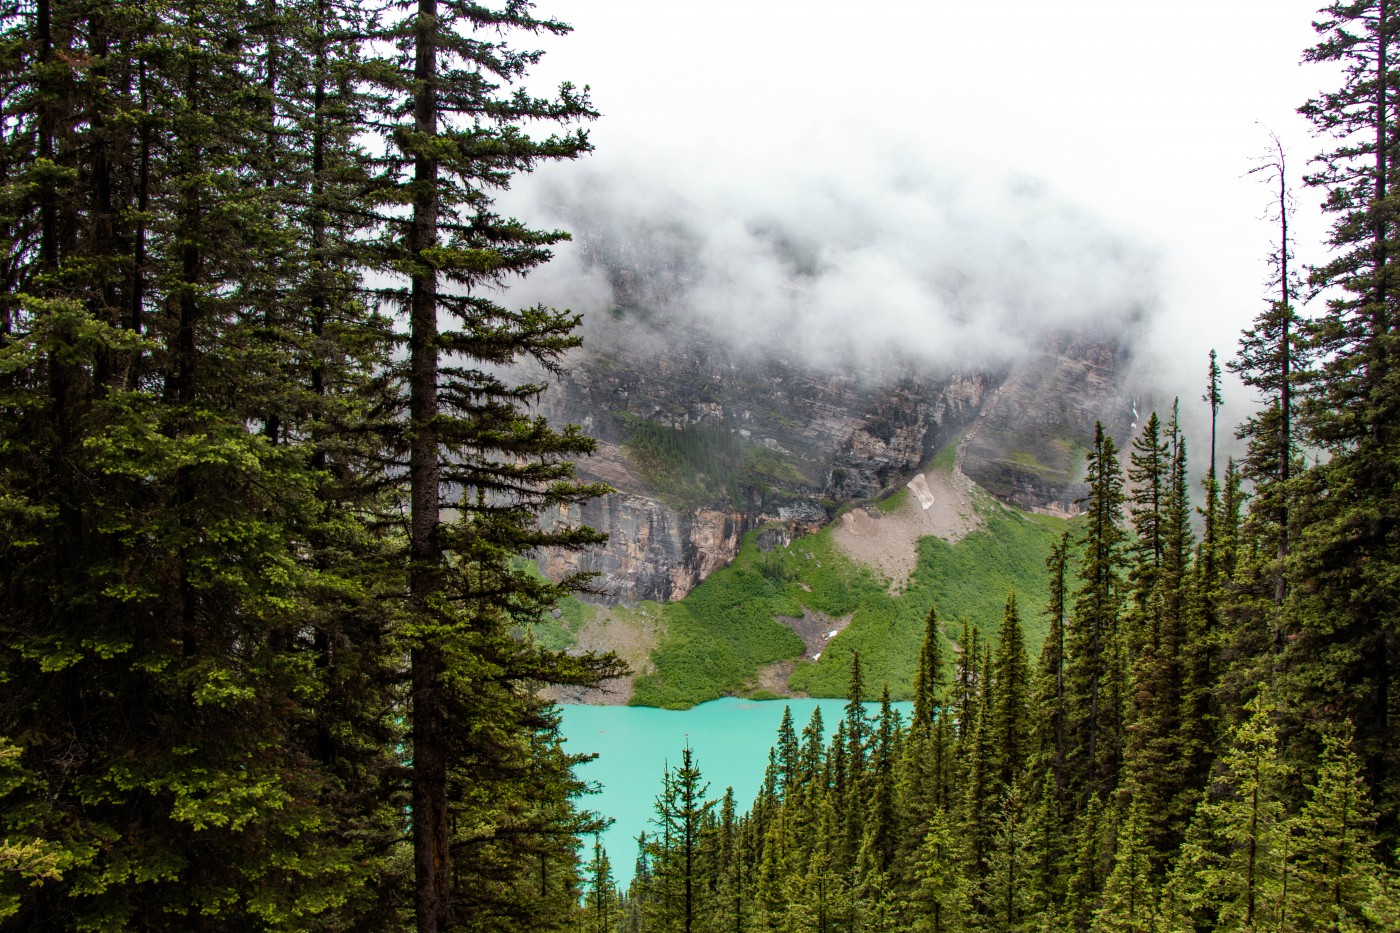 Lake Agnes Tea House Hike in Banff | Top 10 Photography Spots in Banff National Park